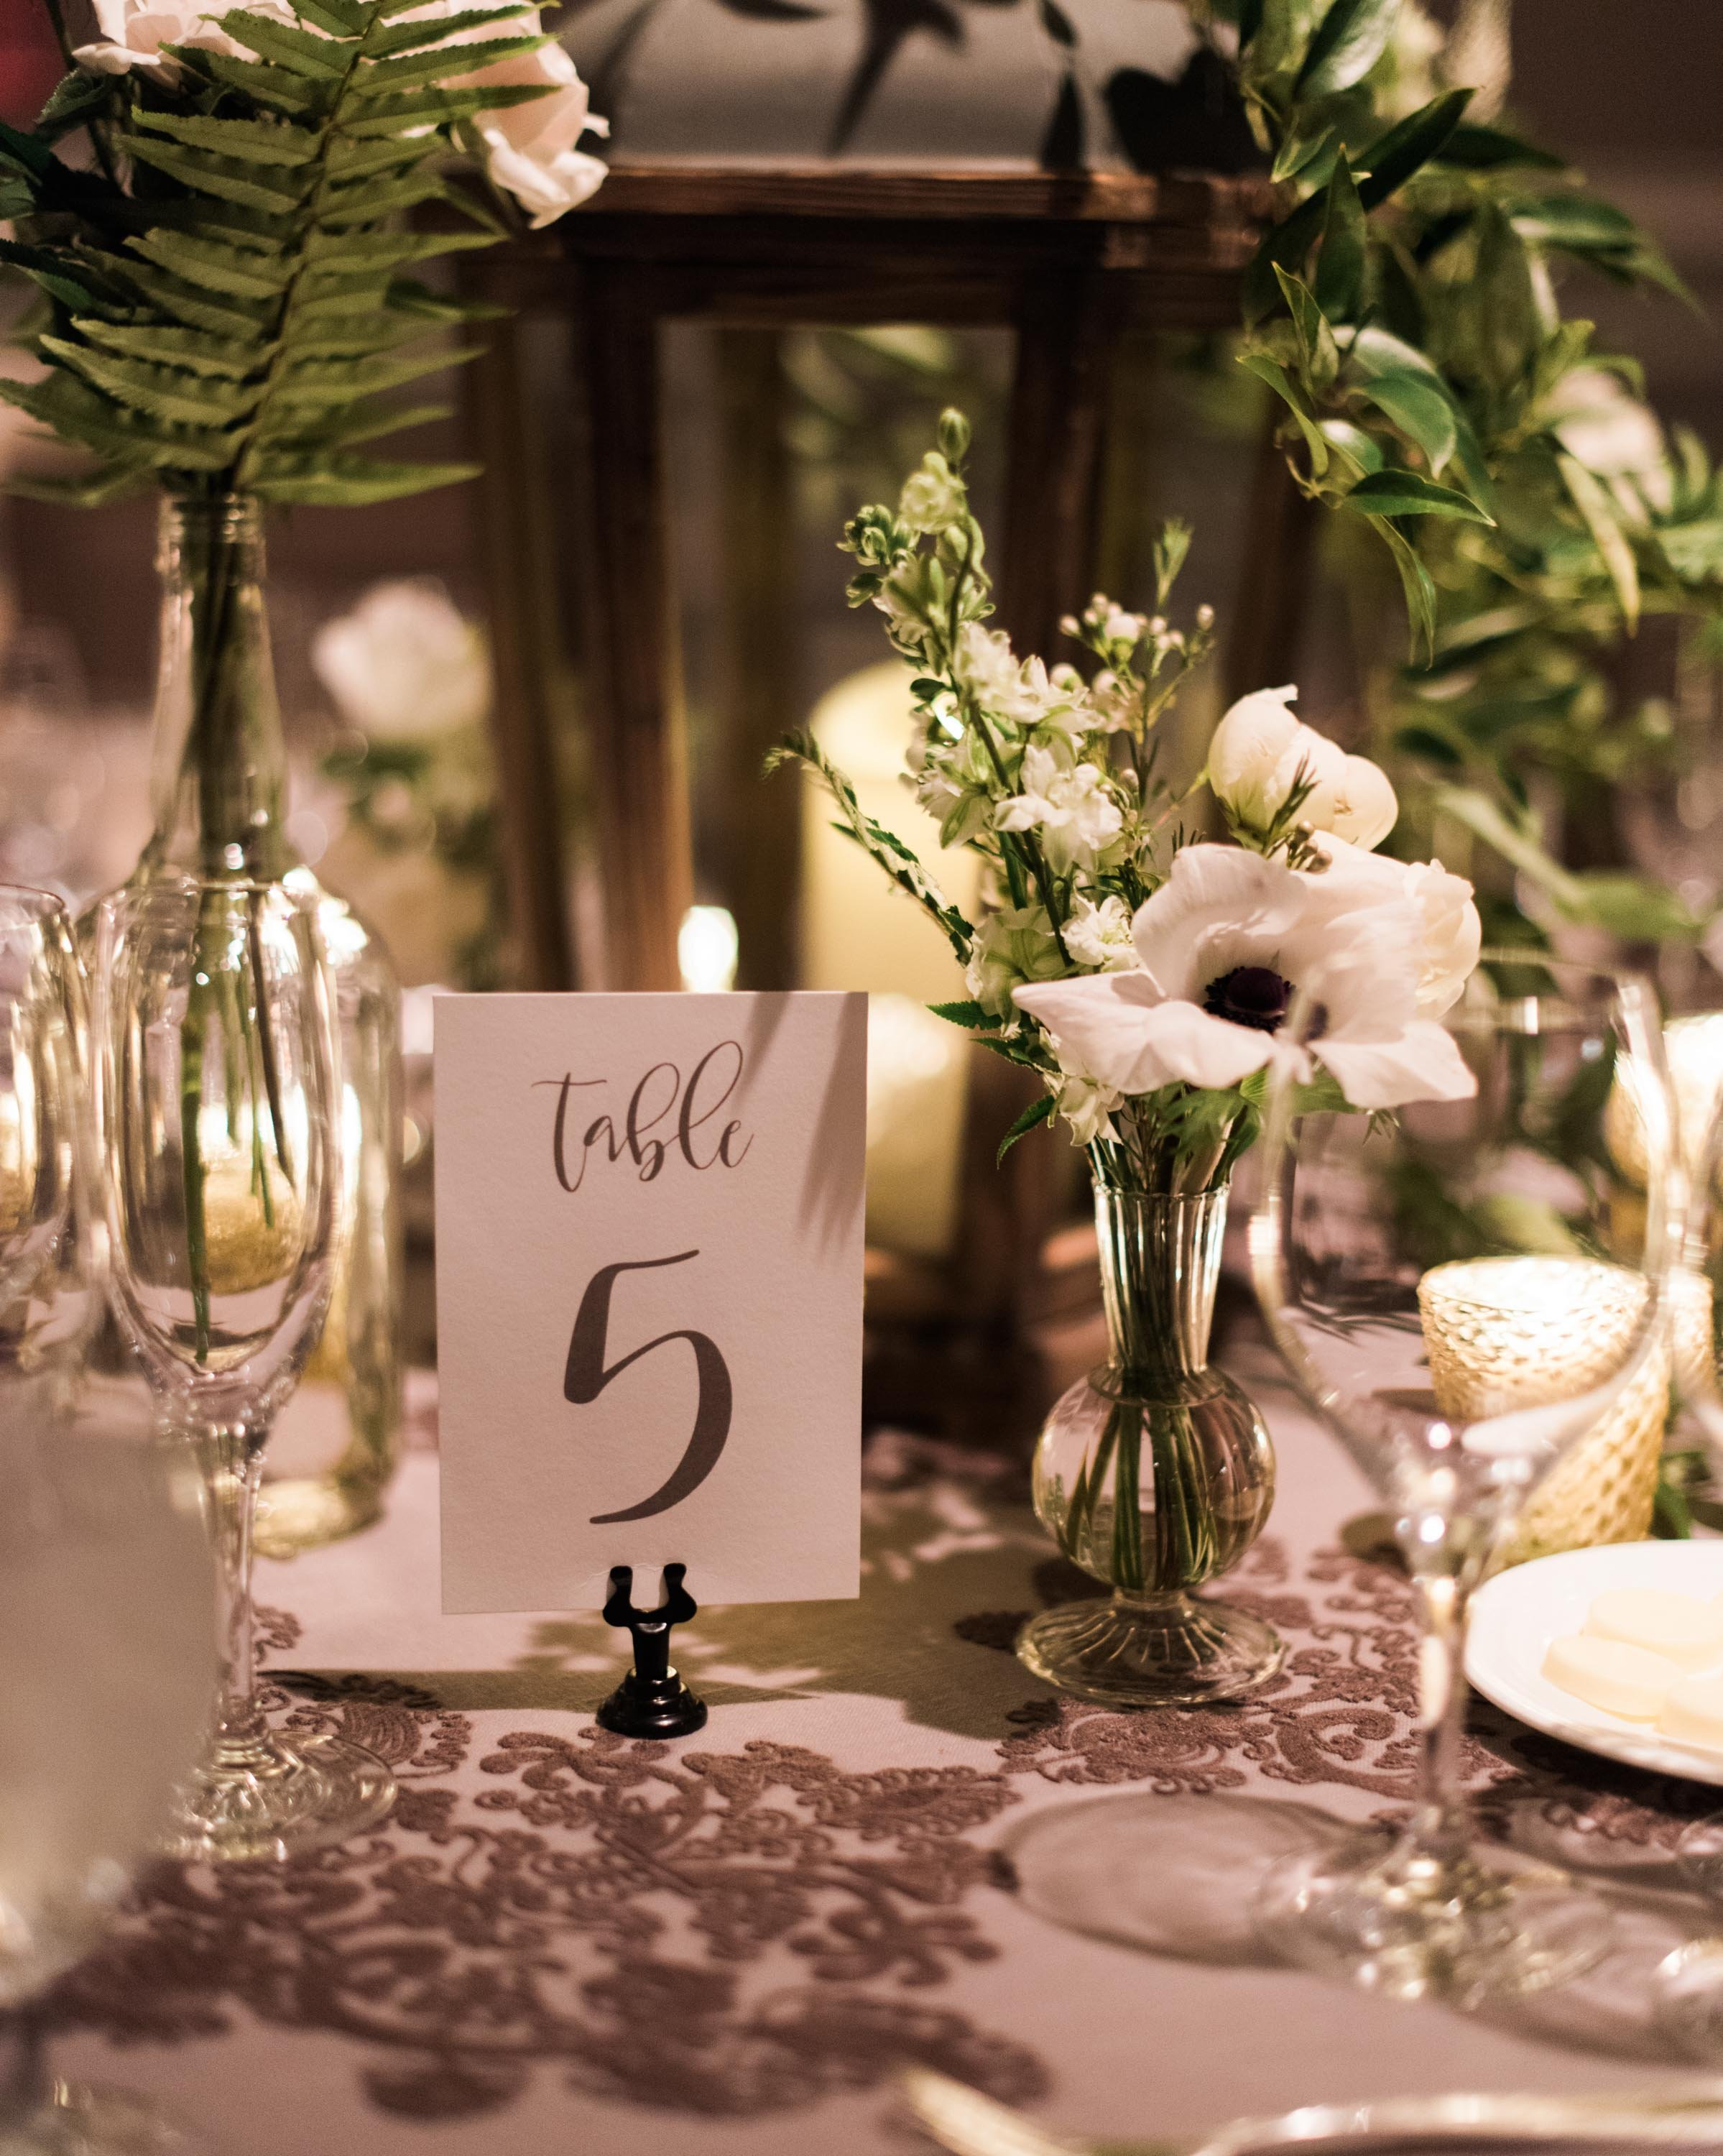 Restoration Hardware Inspired Tablescape